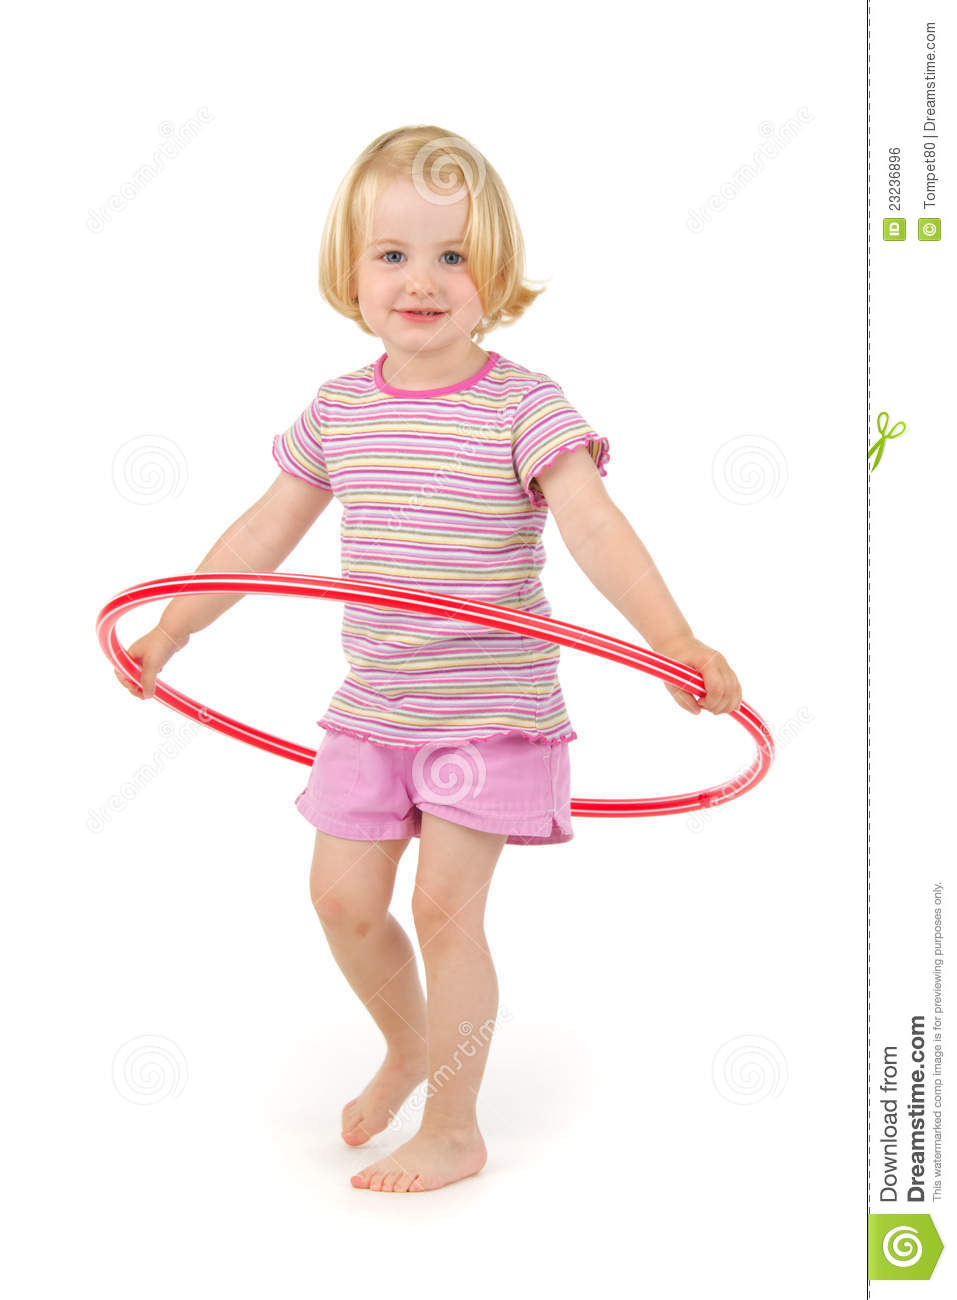 child with hula hoop royalty free stock image image. Black Bedroom Furniture Sets. Home Design Ideas